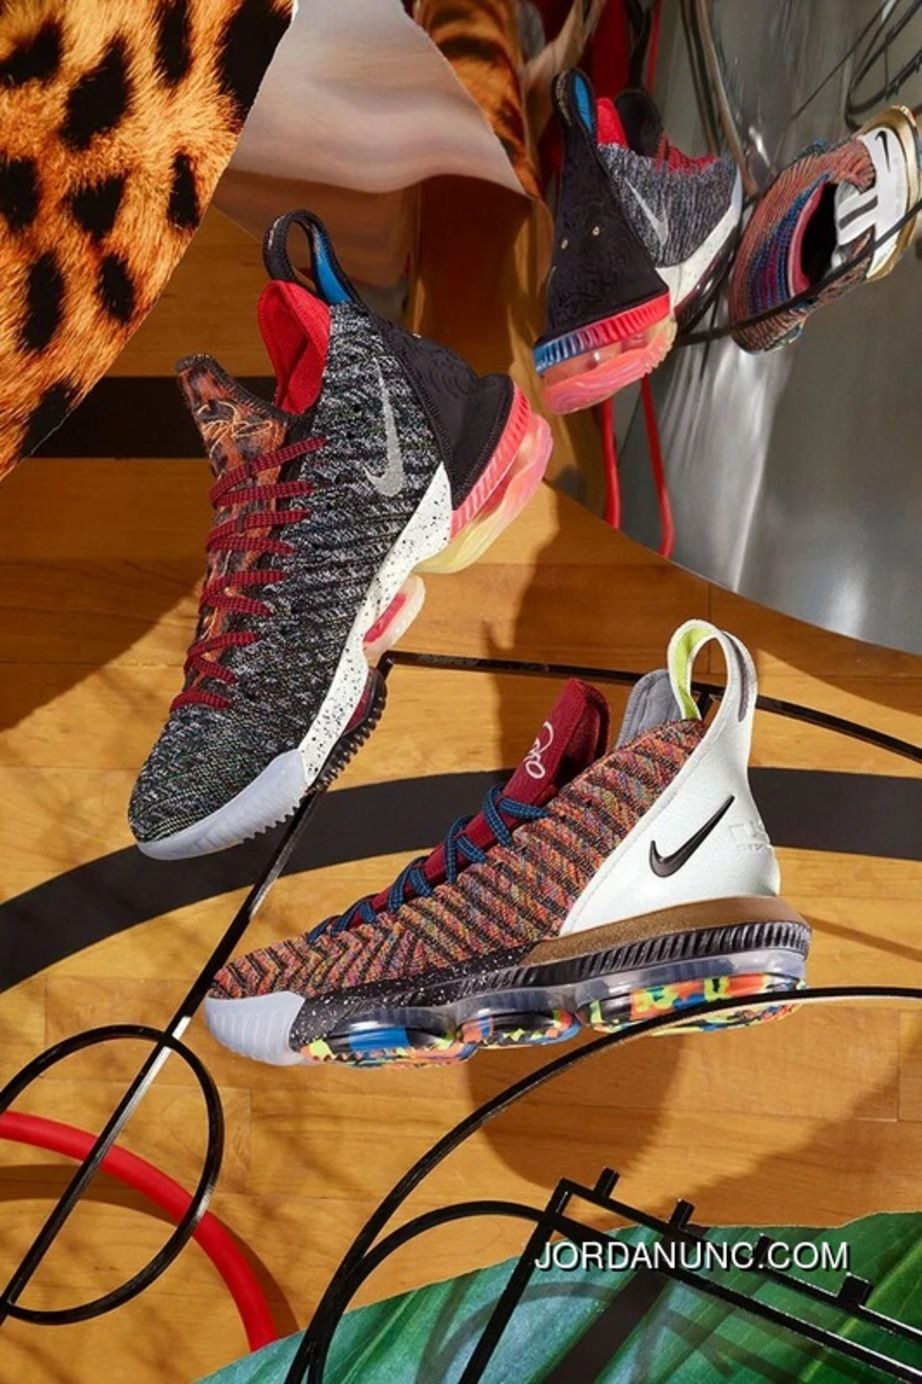 """separation shoes af98b 0ecf1 Real Fibers LeBron Signature Nike LeBron 16 """"What The"""" Boots Indoor Battle  Mid Top Basketball Shoes ..."""